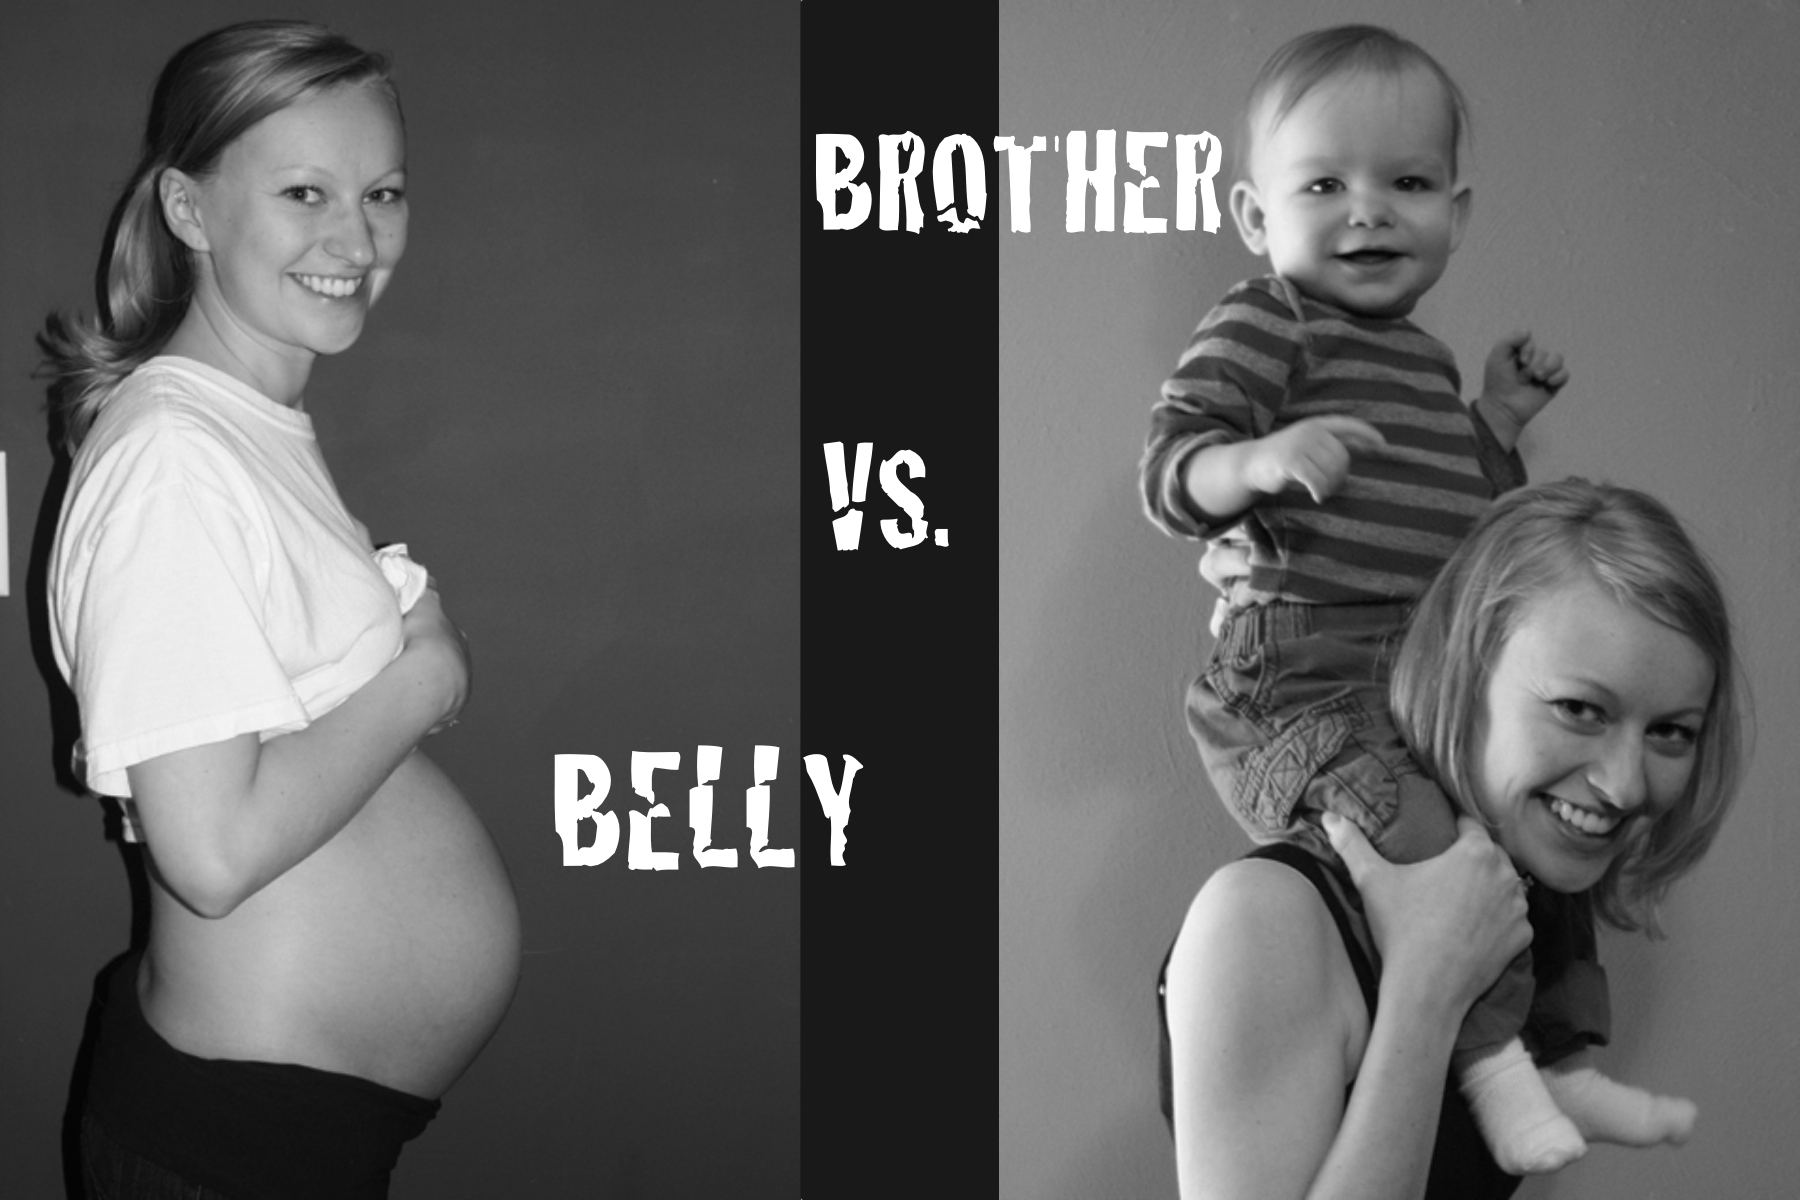 The Brother vs. Belly Battle